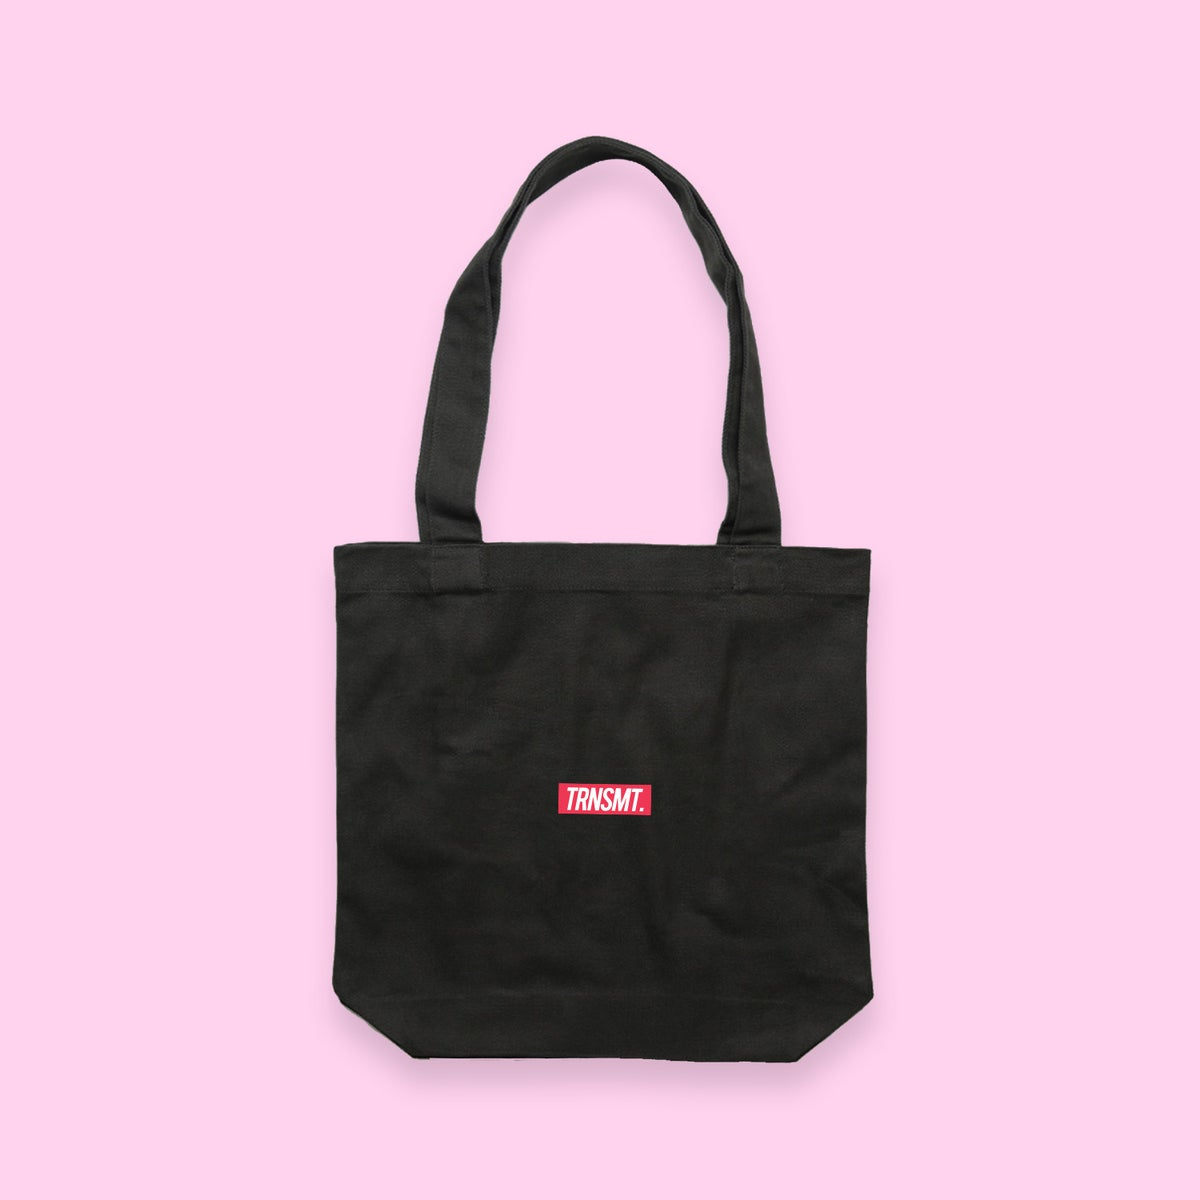 Image of Hill Tote Bag - Black